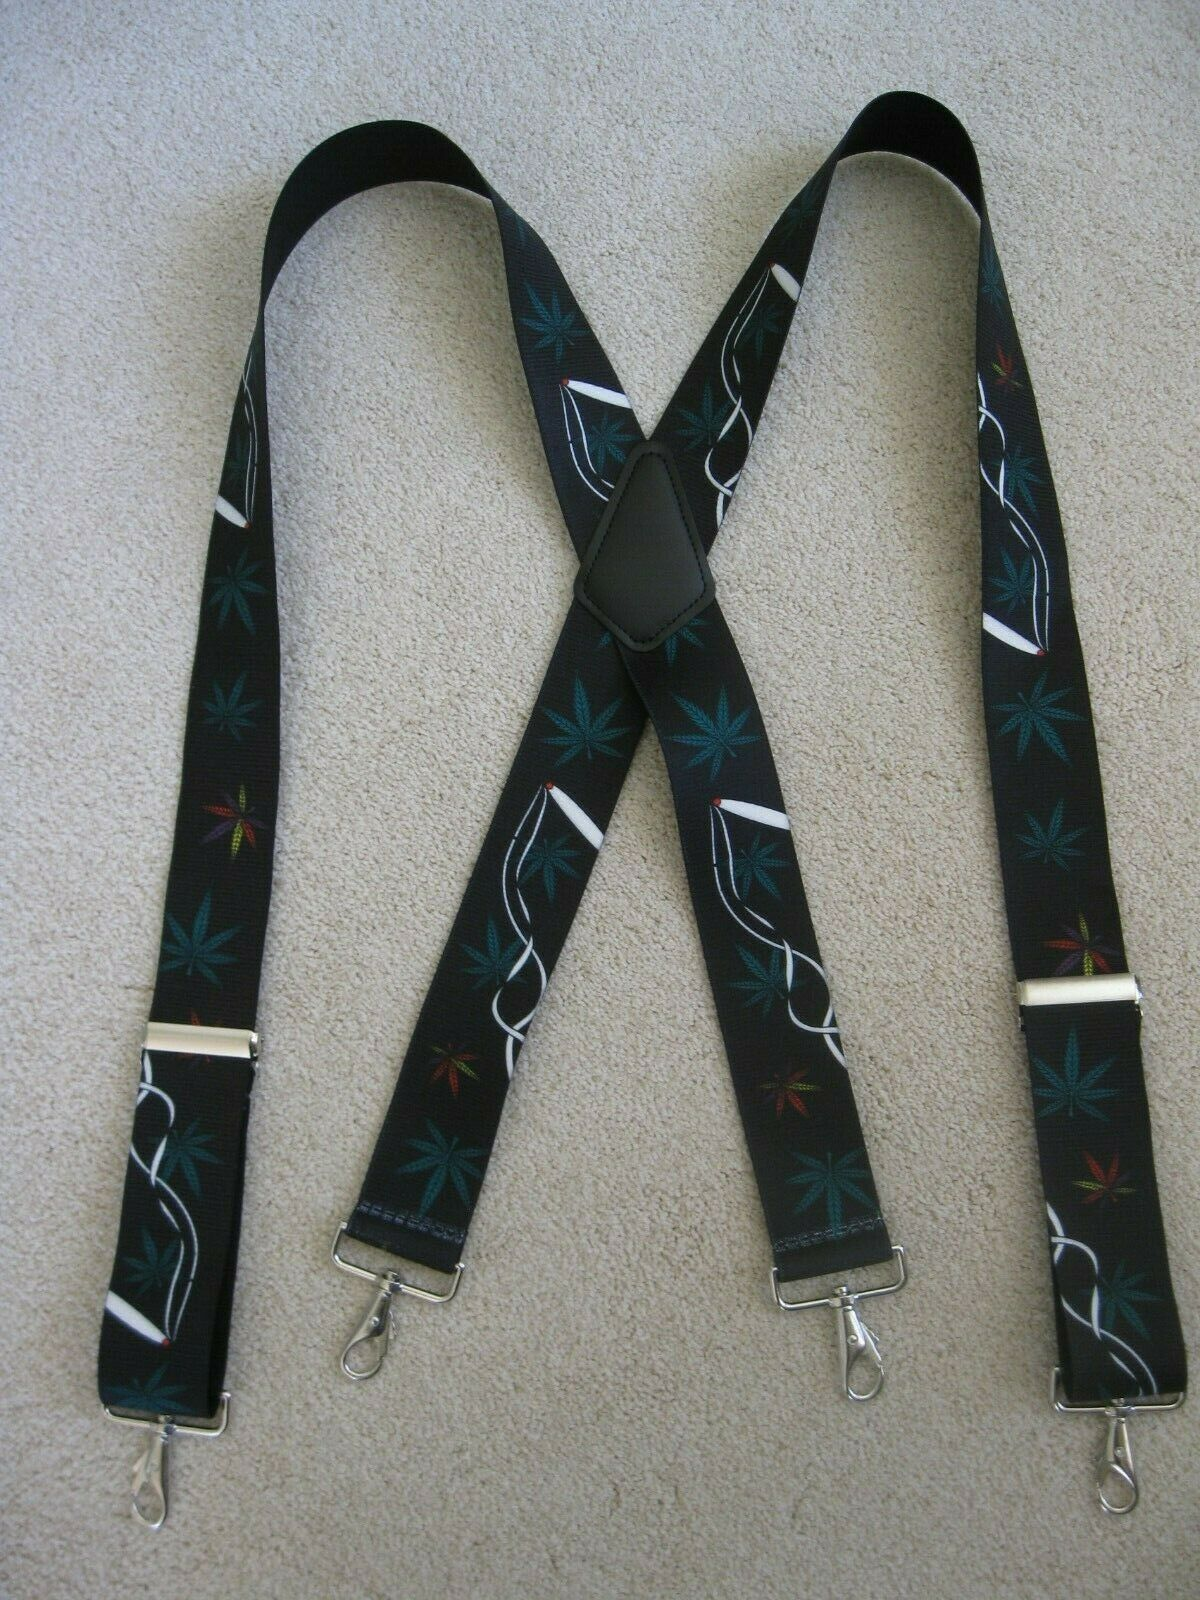 "Image 01 - X Style 1 -1/2"" & 2"" Marijuana Joints Suspenders with Loop Snaps CLIPS USA Made"